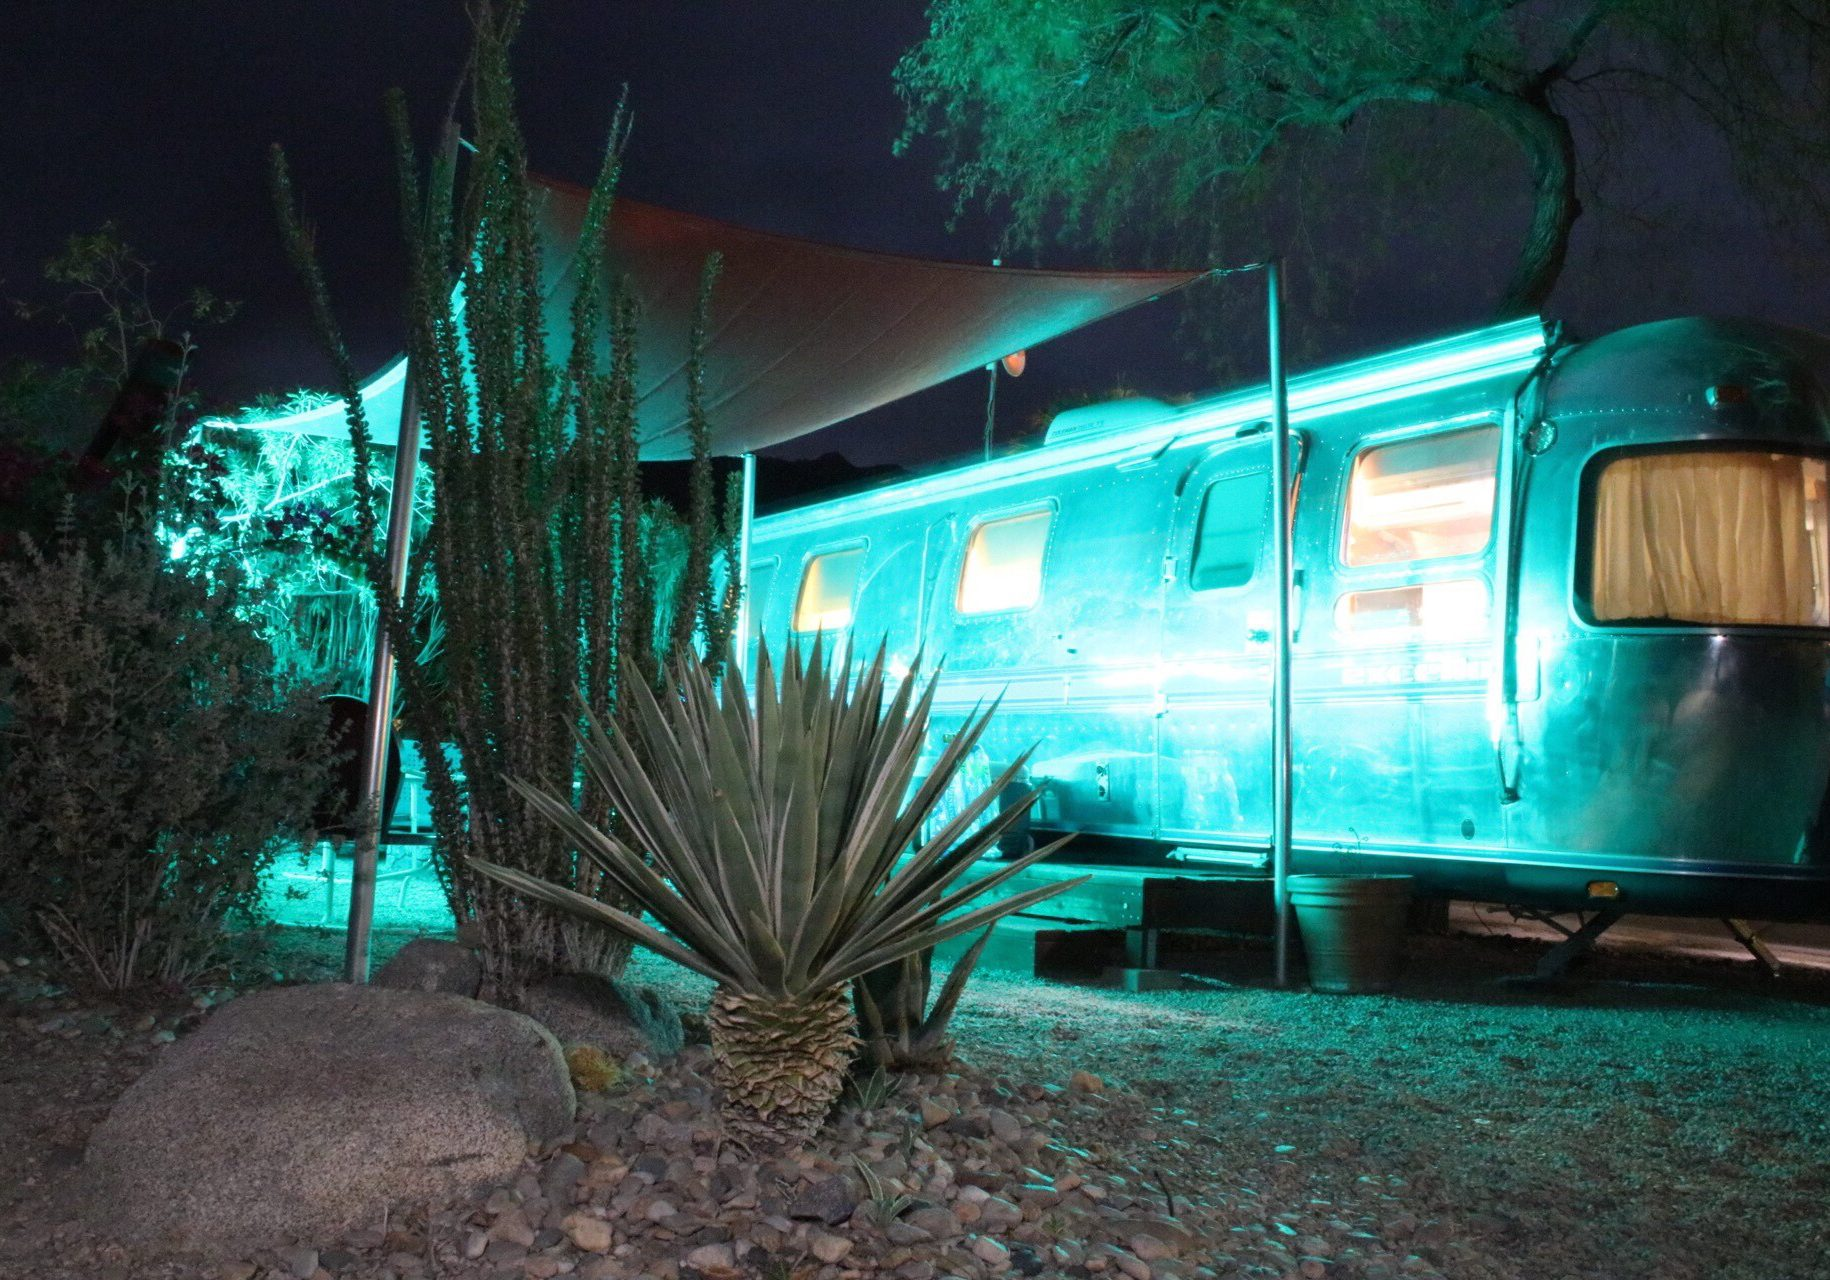 palm springs desert borrego RV vintage airstream stay camping rent